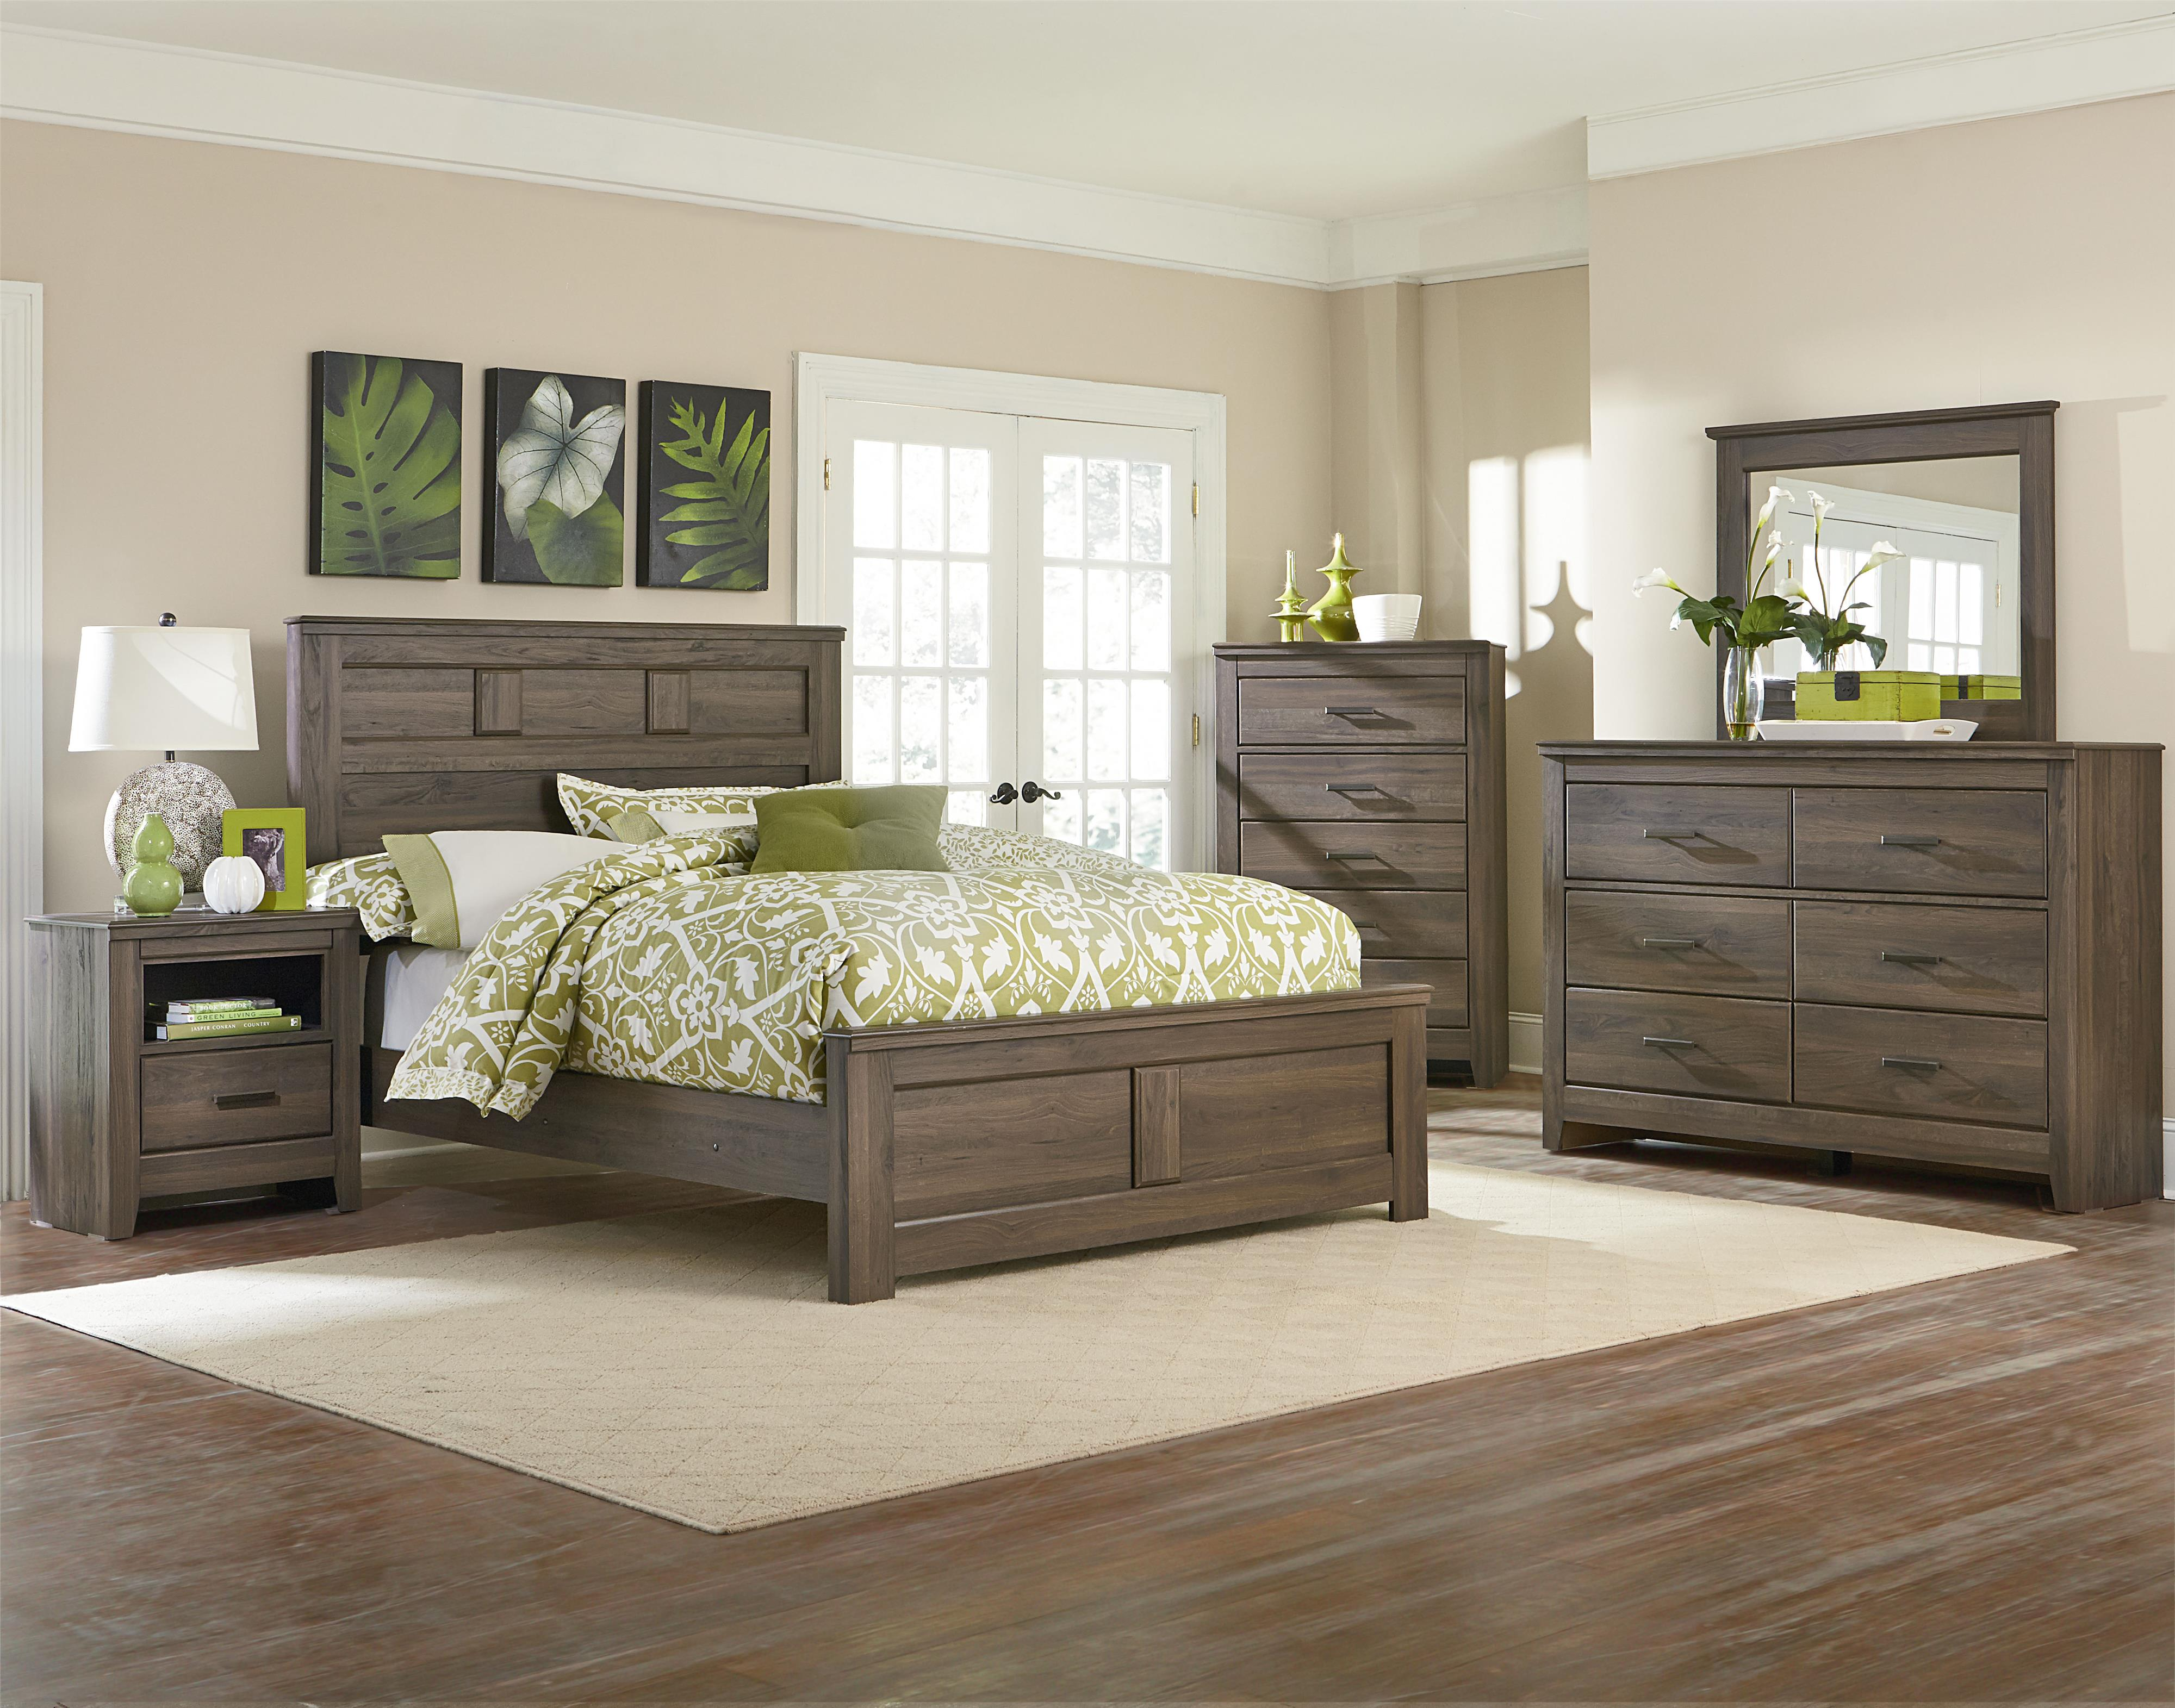 queen panel bed with raised panelsstandard furniture | wolf